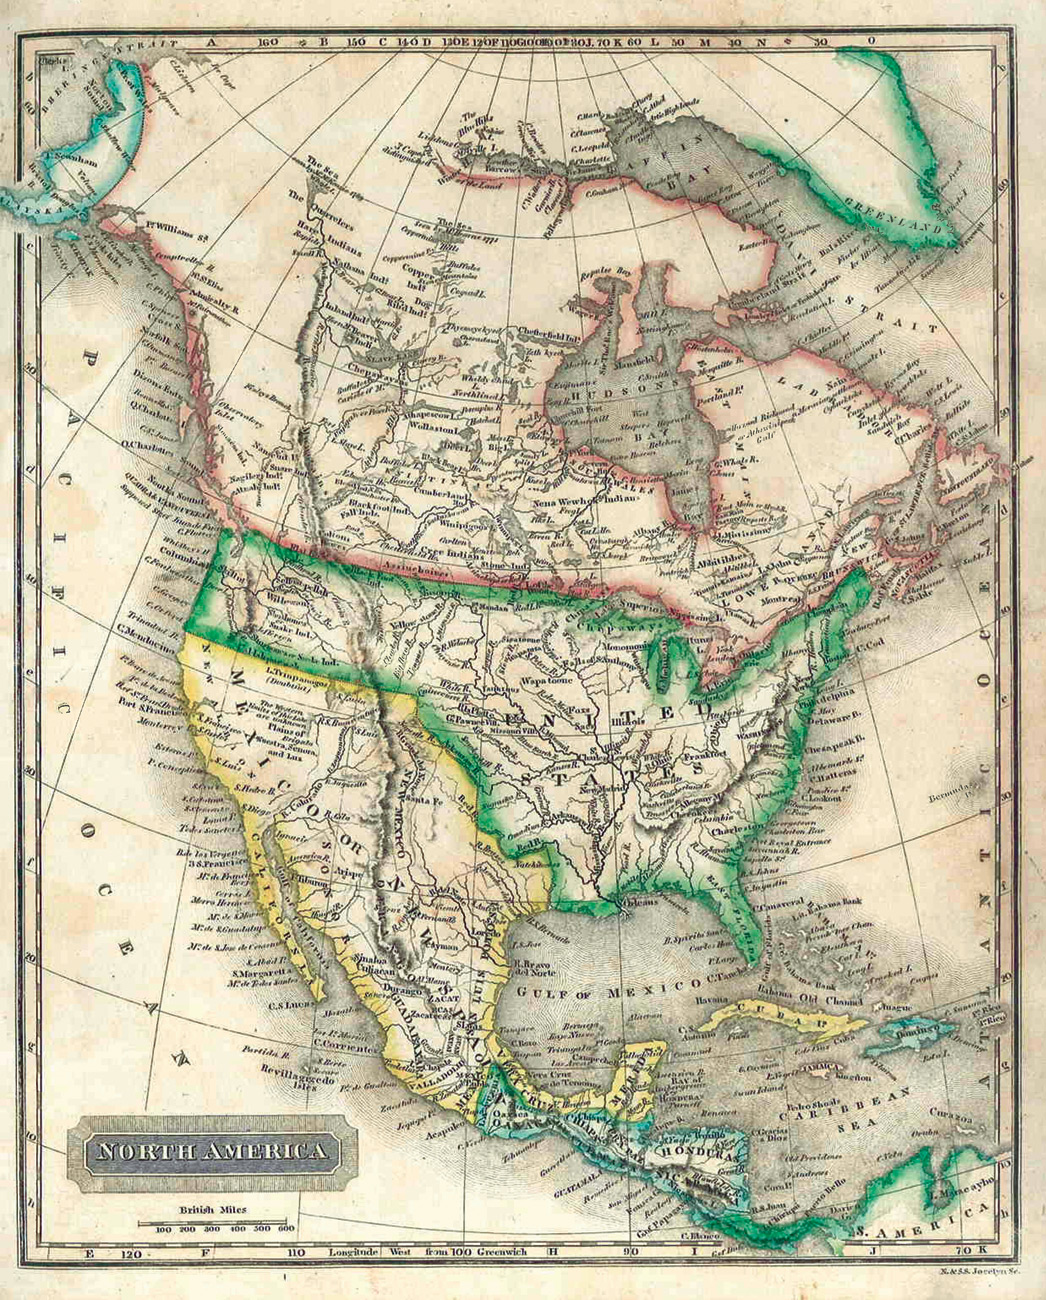 North American map showing California as part of Mexico, and the United Provinces of Central America (Costa Rica, Guatemala, Honduras, Nicaragua, and San Salvador), which had recently gained independence from Mexico.